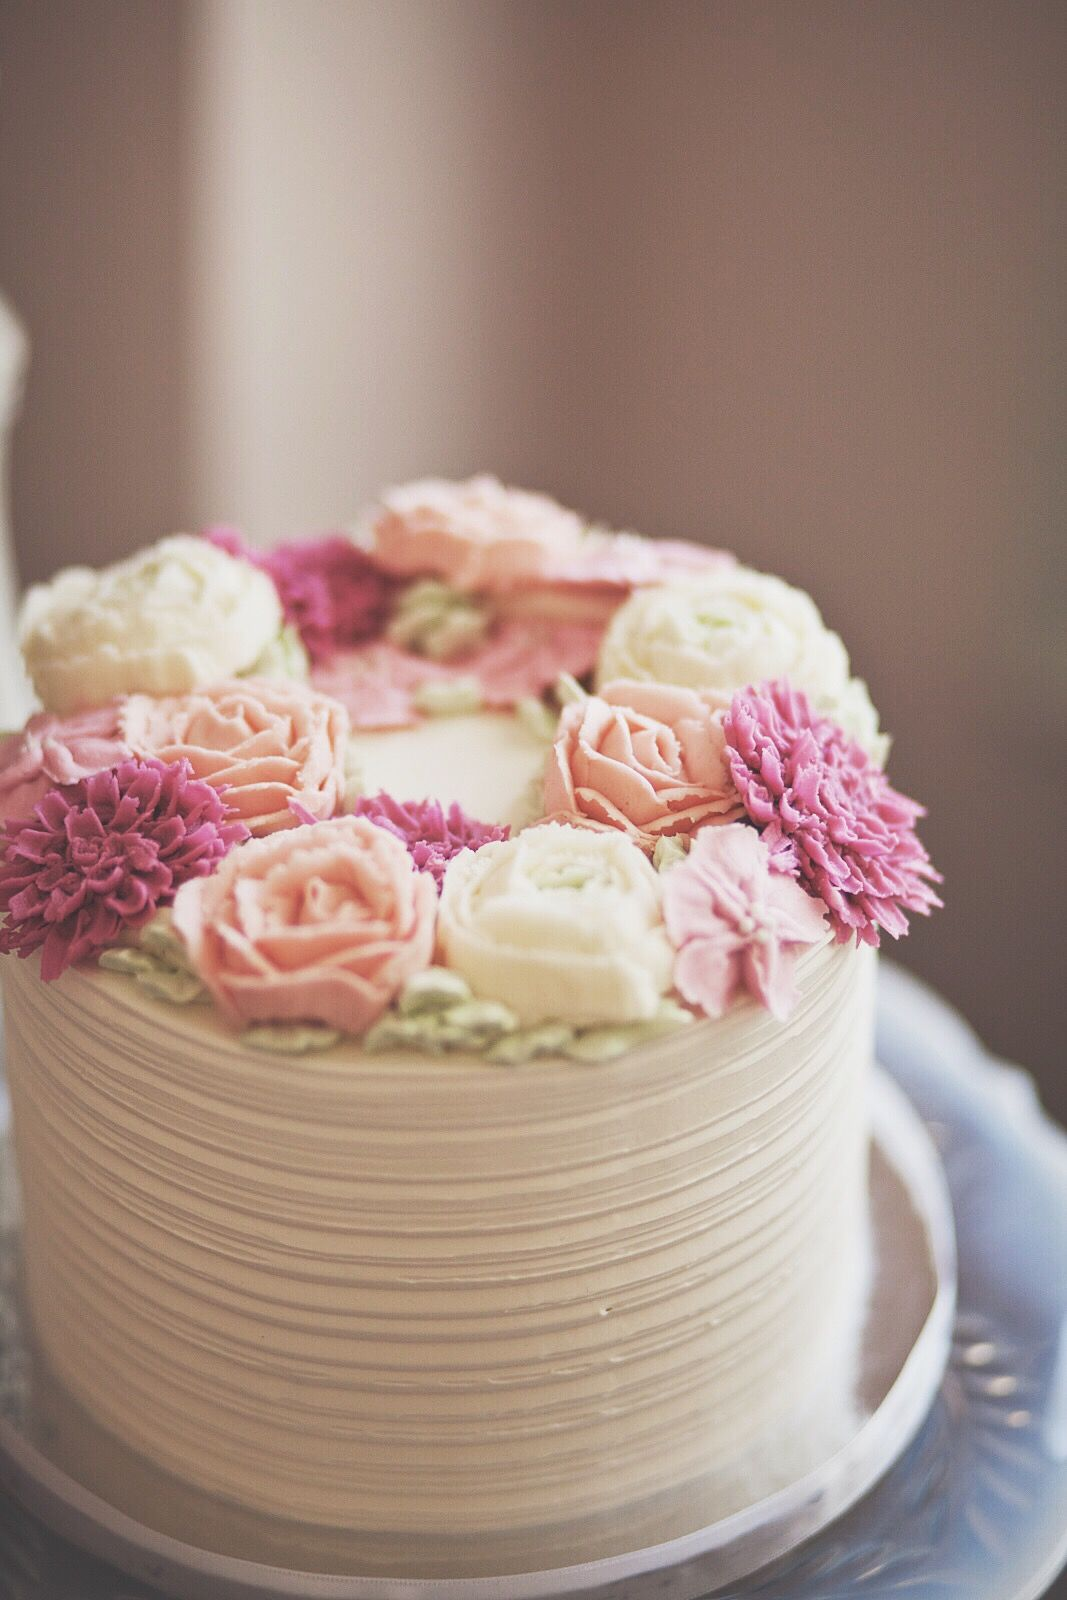 Rustic buttercream cake with soft pink and cream rose flowers rustic buttercream cake with soft pink and cream rose flowers izmirmasajfo